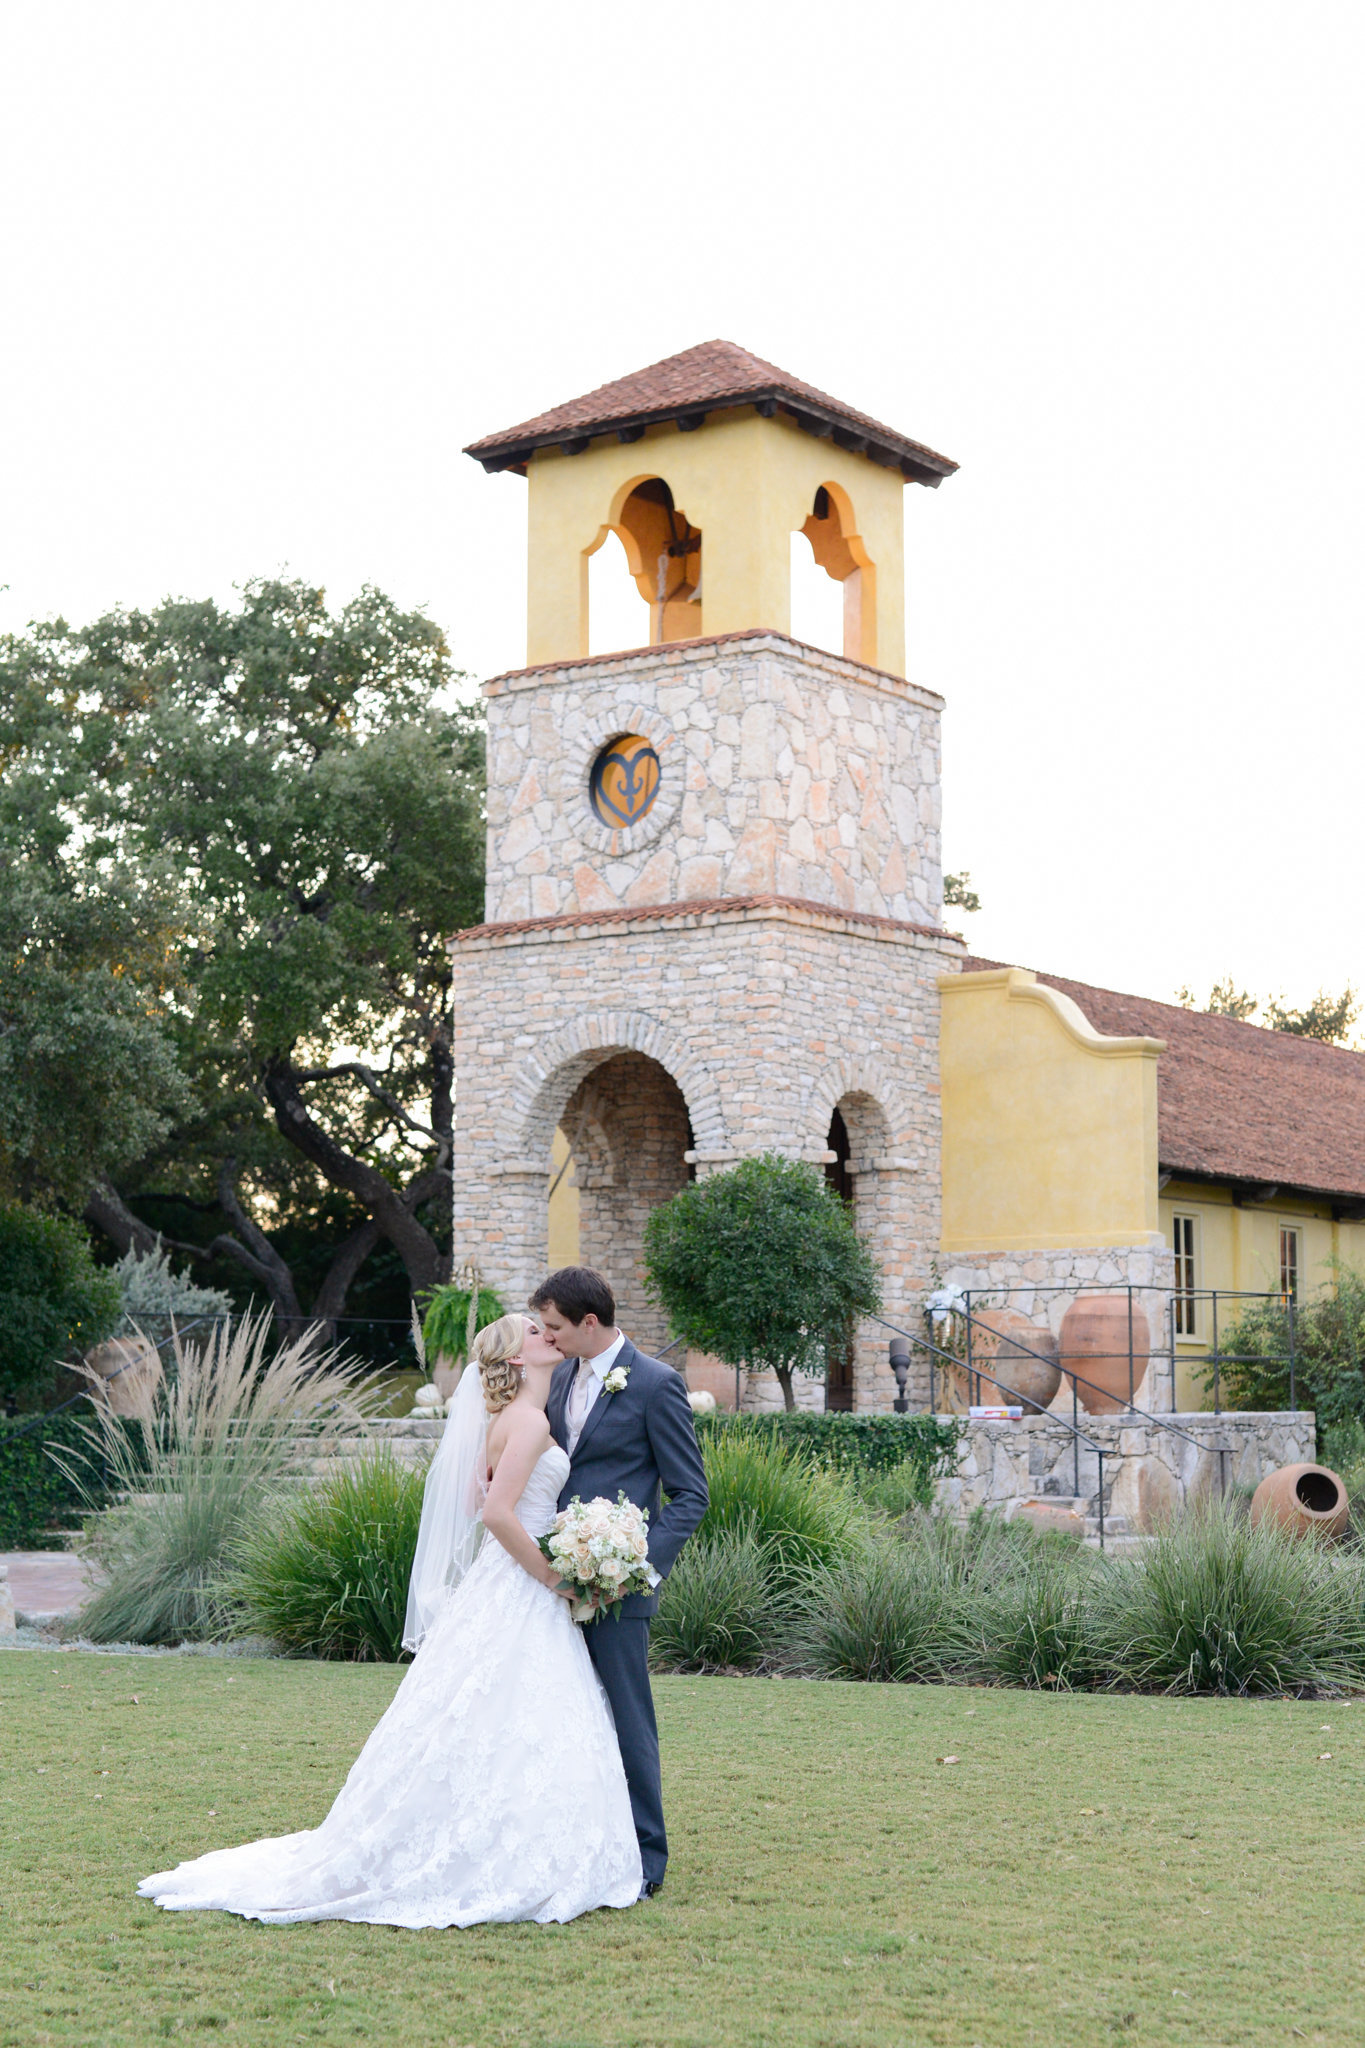 Groom kisses his bride at Ian's Chapel of Camp Lucy Wedding in Dripping Springs